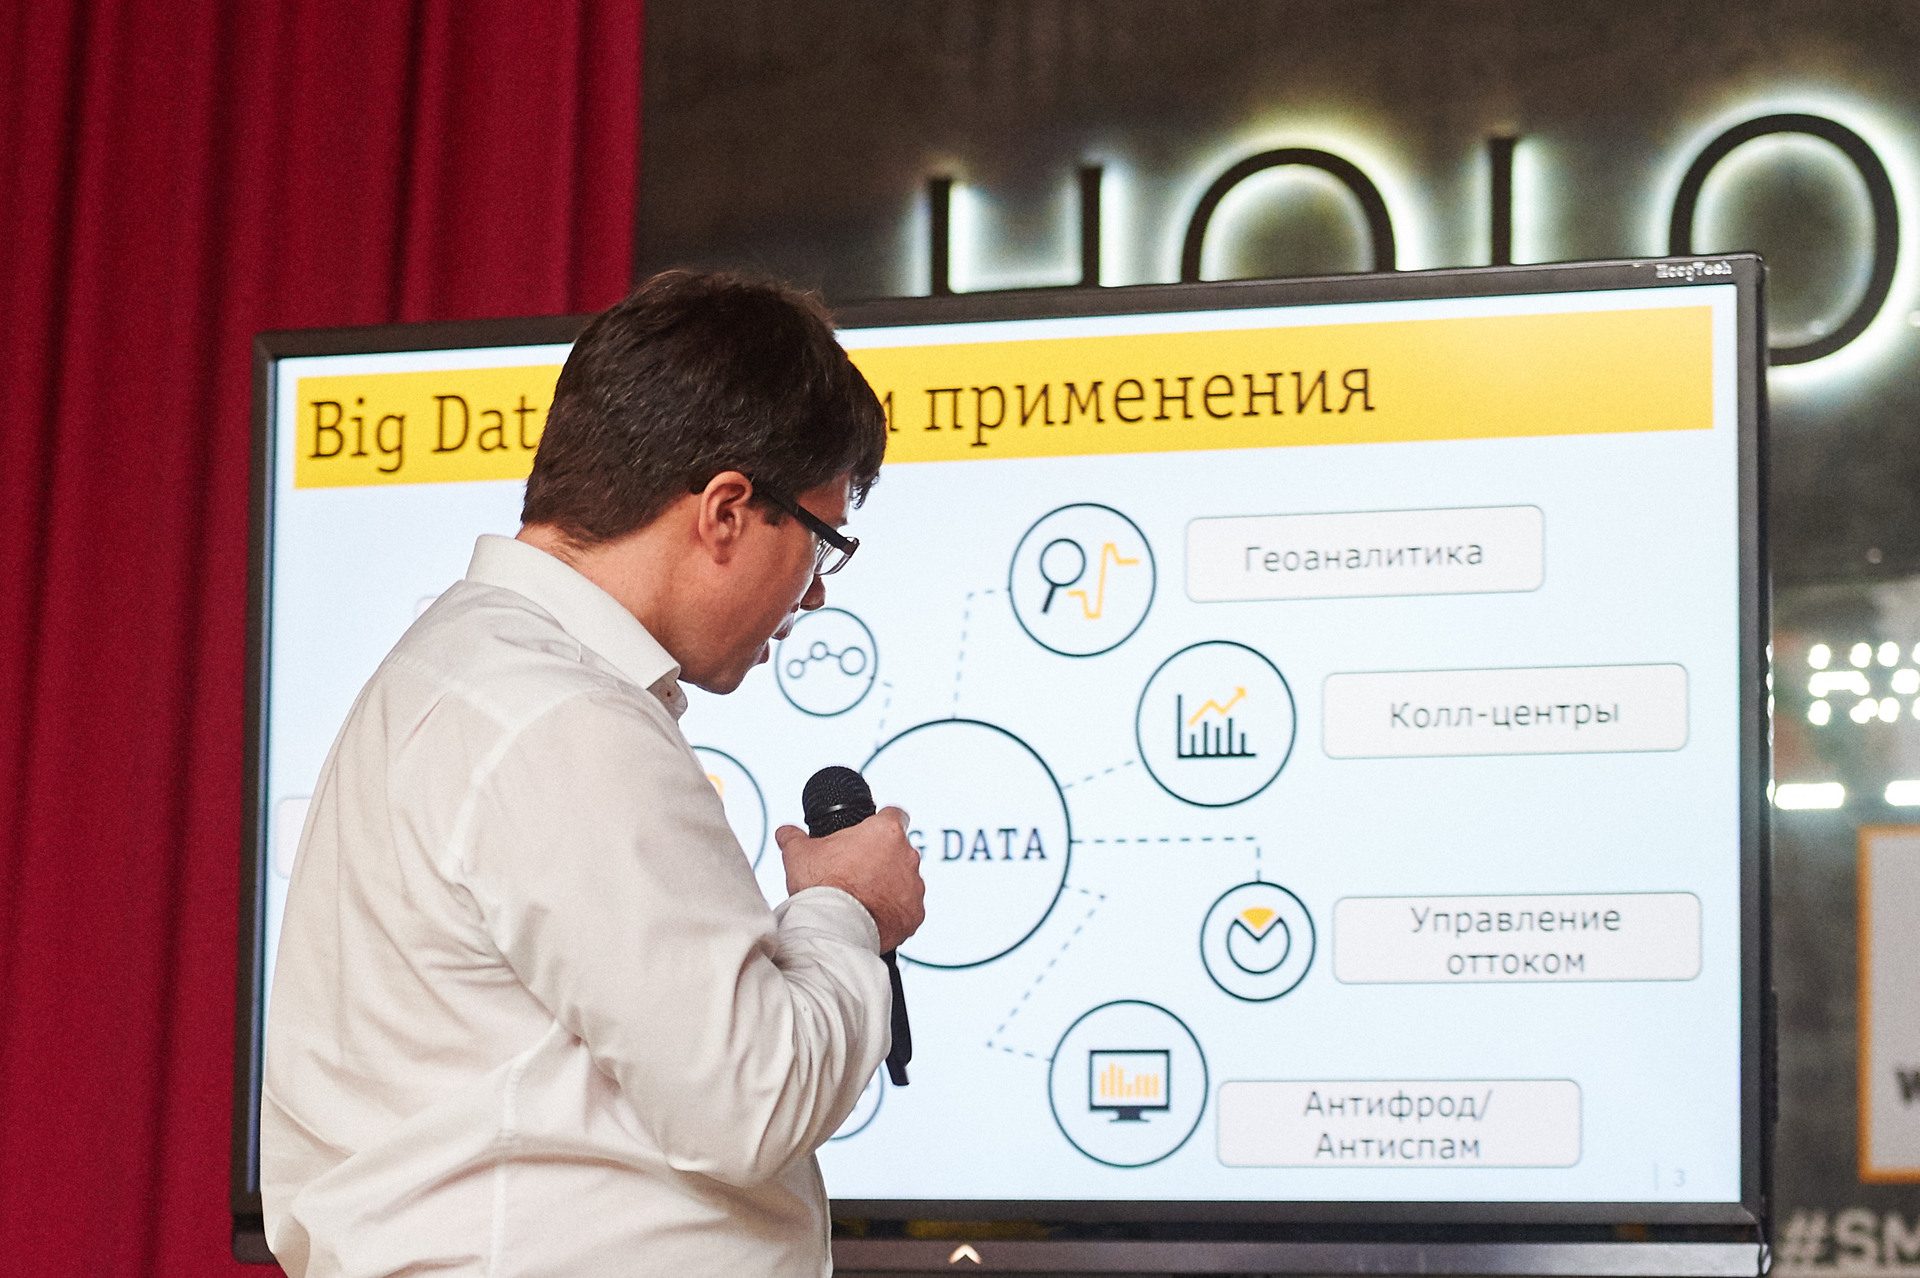 Festival of Data in the museum of Moscow as it was